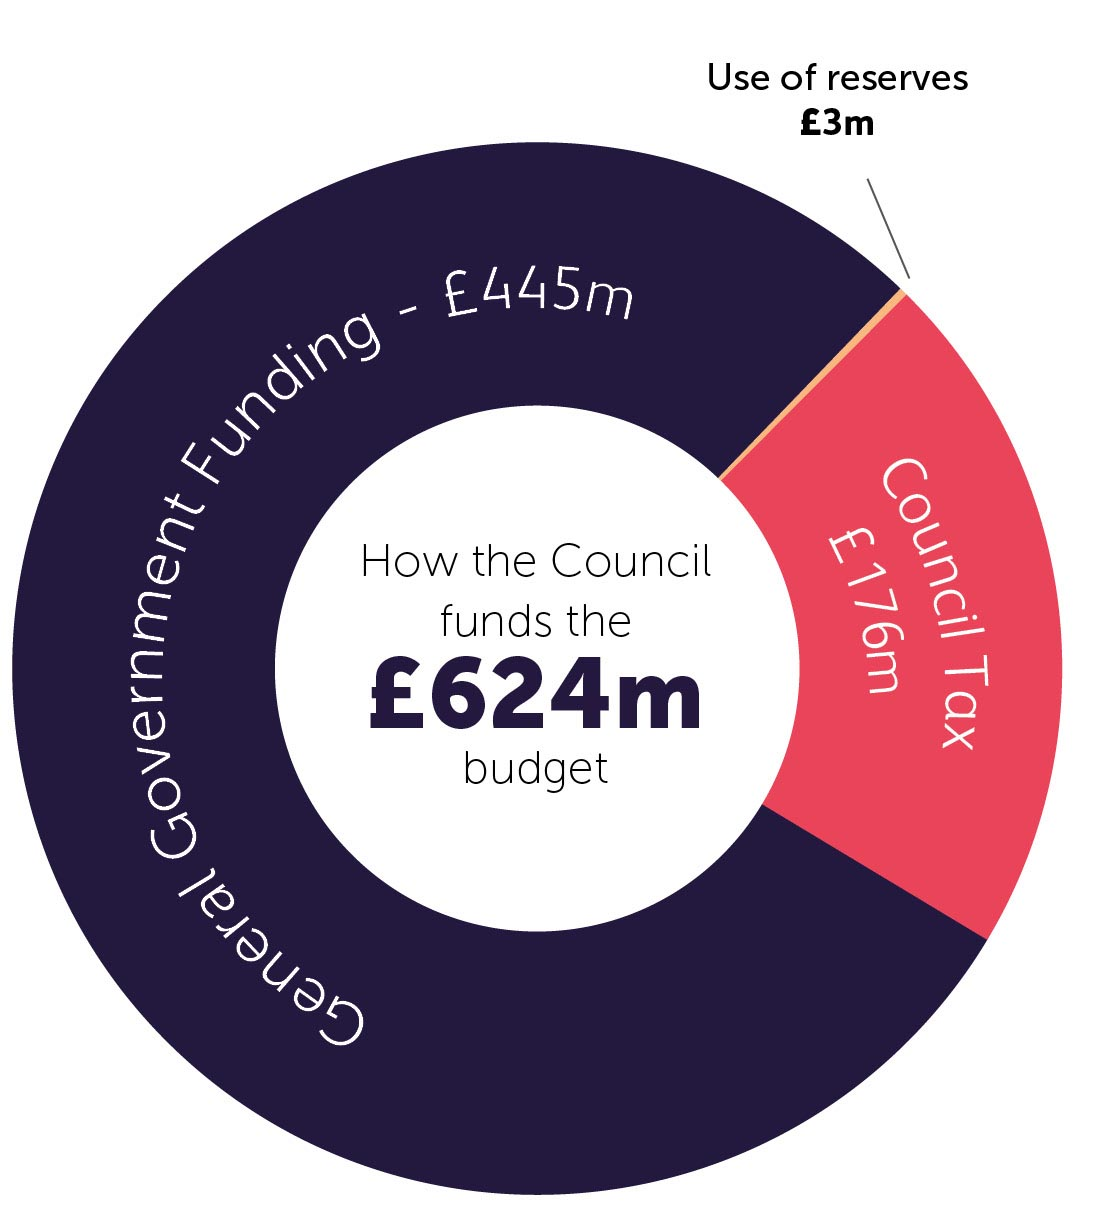 Chart showing how the council funds the £624m budget